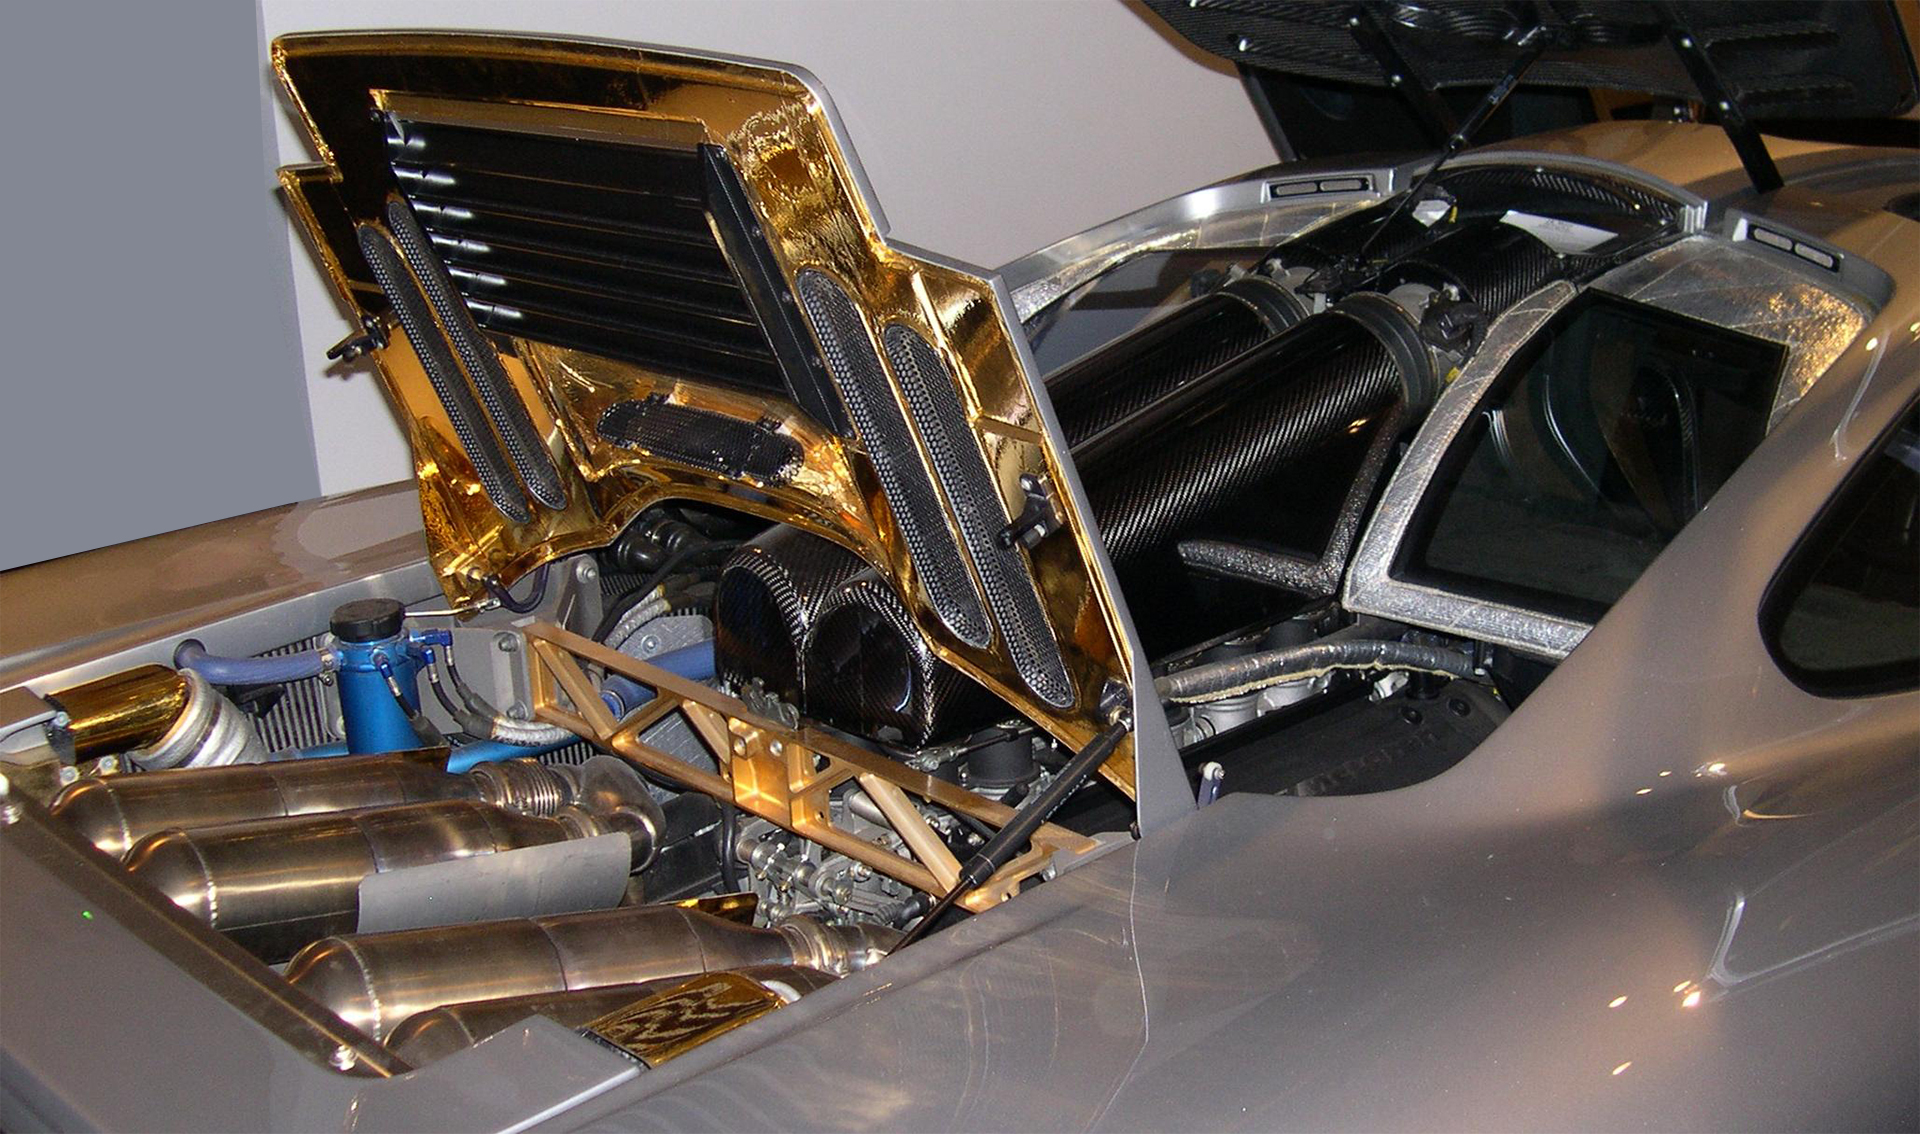 McLaren F1 - under the hood gold / or sous le capot